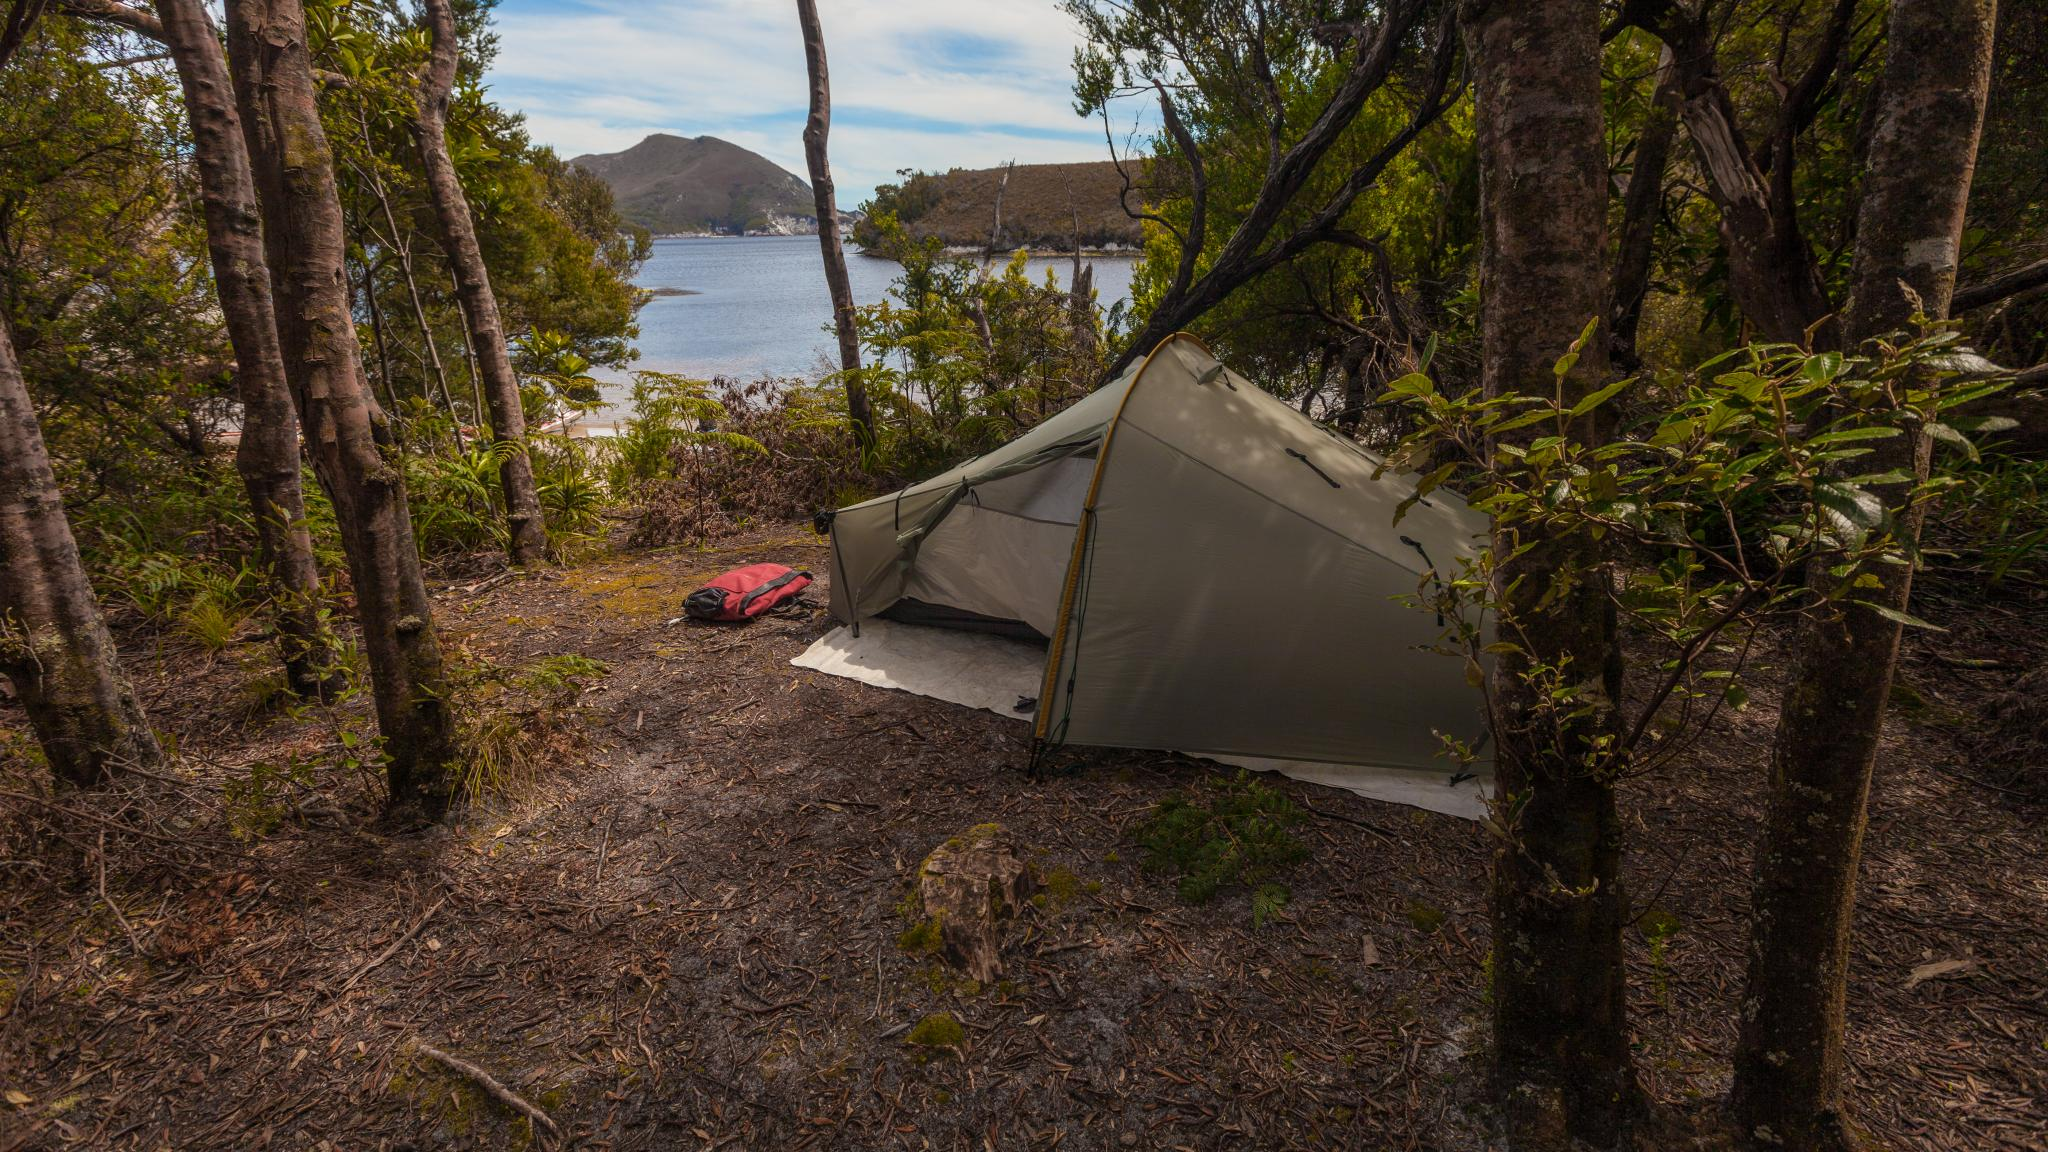 Roaring 40s Kayaking - Camping and kayaking holiday Bramble Cove, Port Davey, Southwest Tasmania